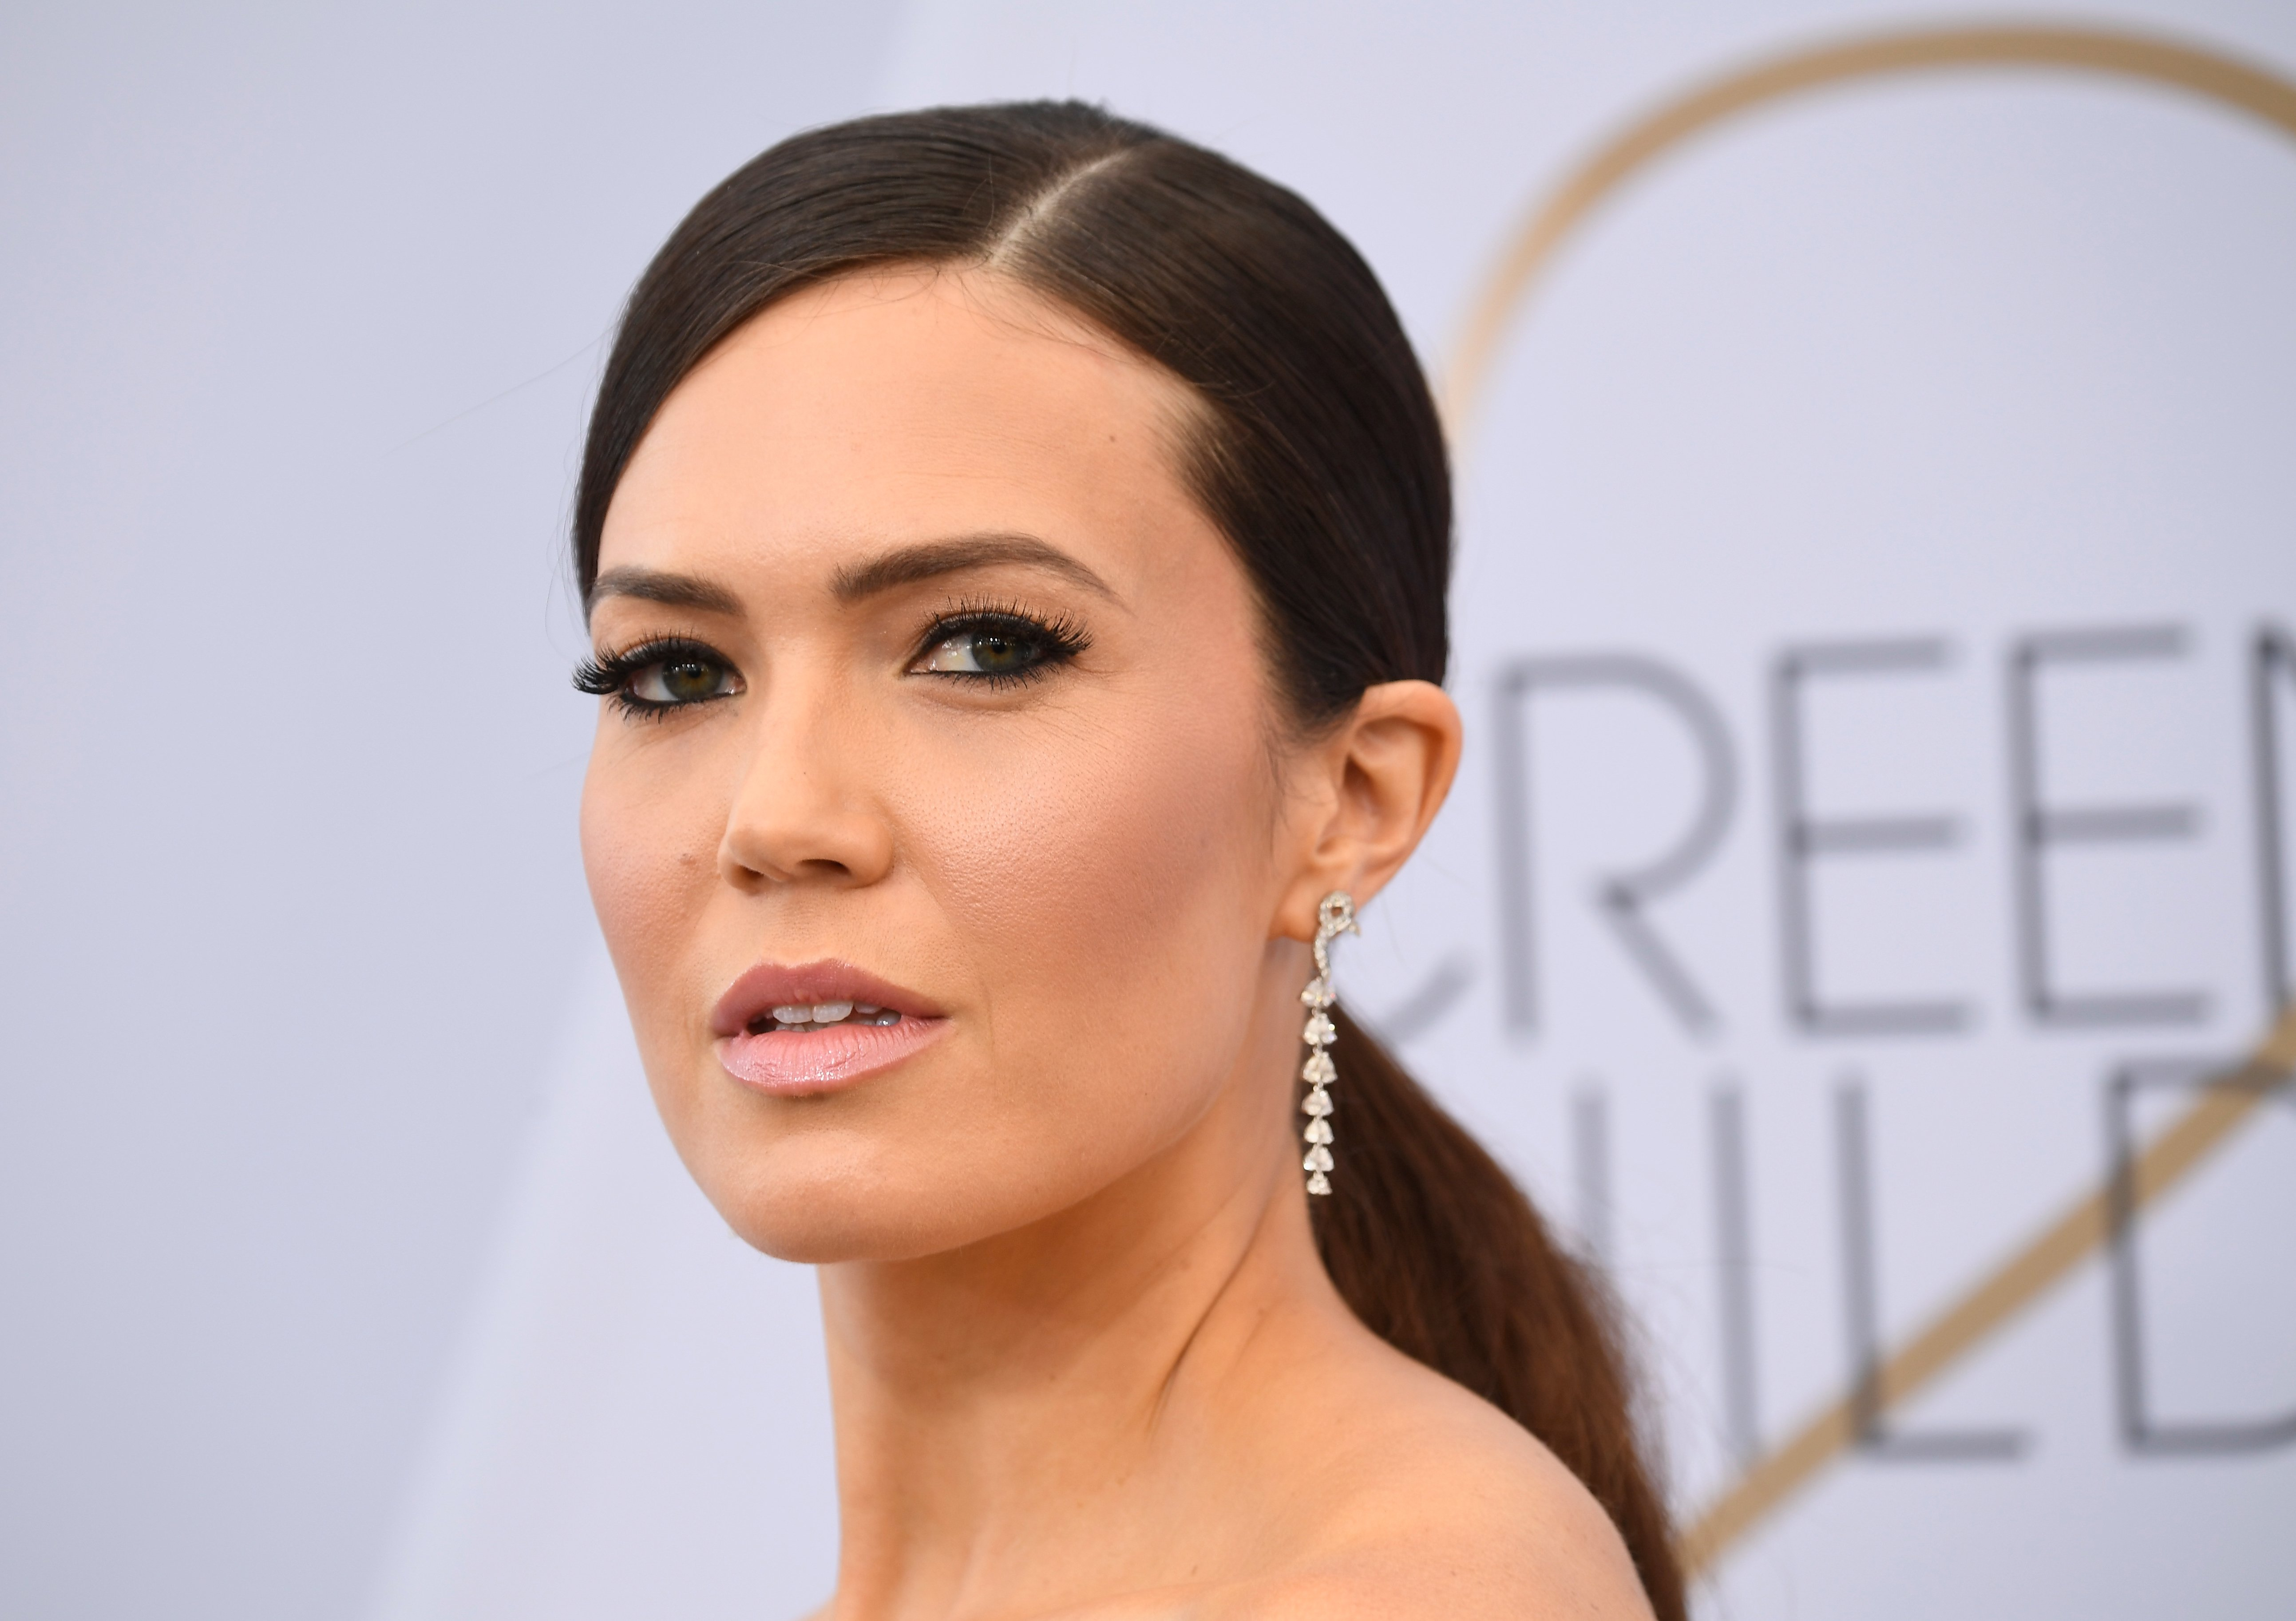 Mandy Moore attends the 25th Annual Screen Actors Guild Awards on January 27, 2019, in Los Angeles, California. | Photo: Getty Images